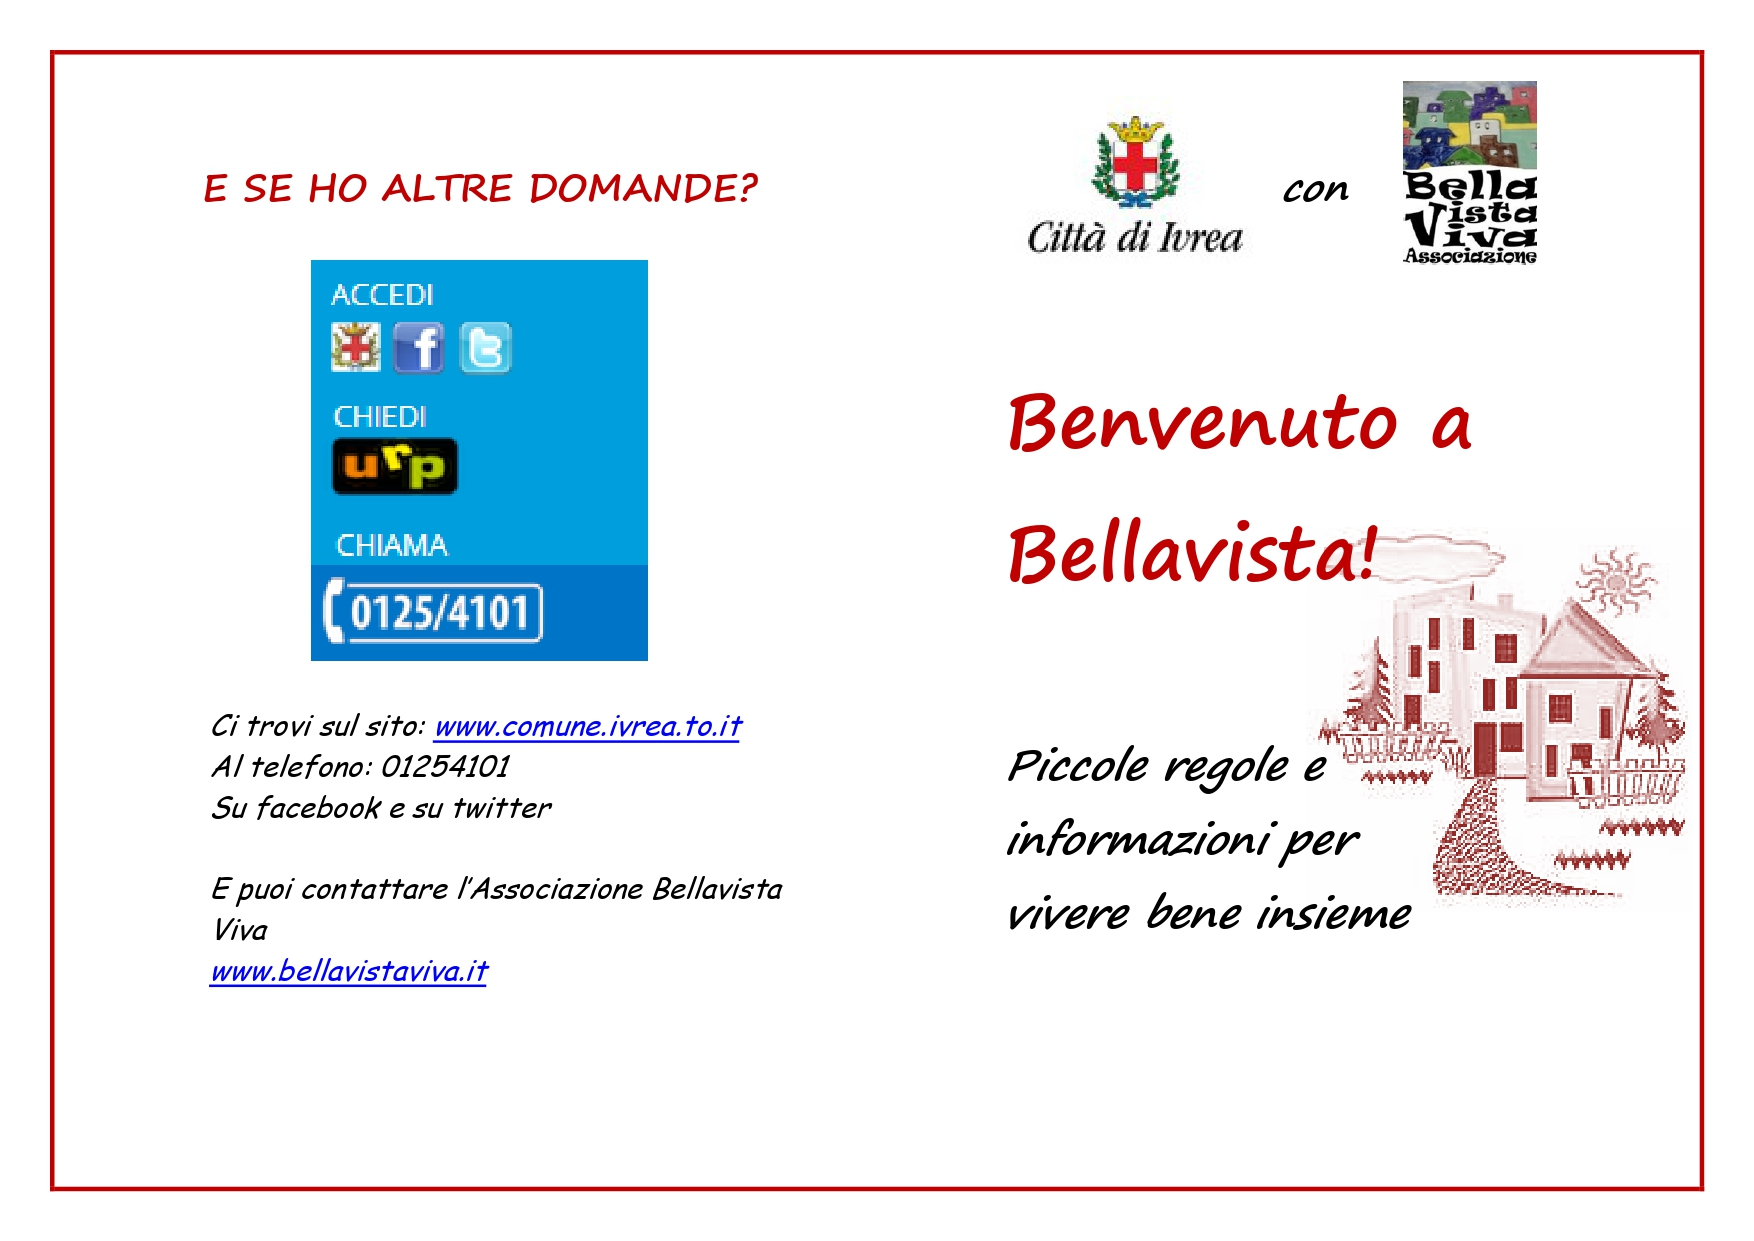 Benvenuto a Bellavista pages to jpg 0001